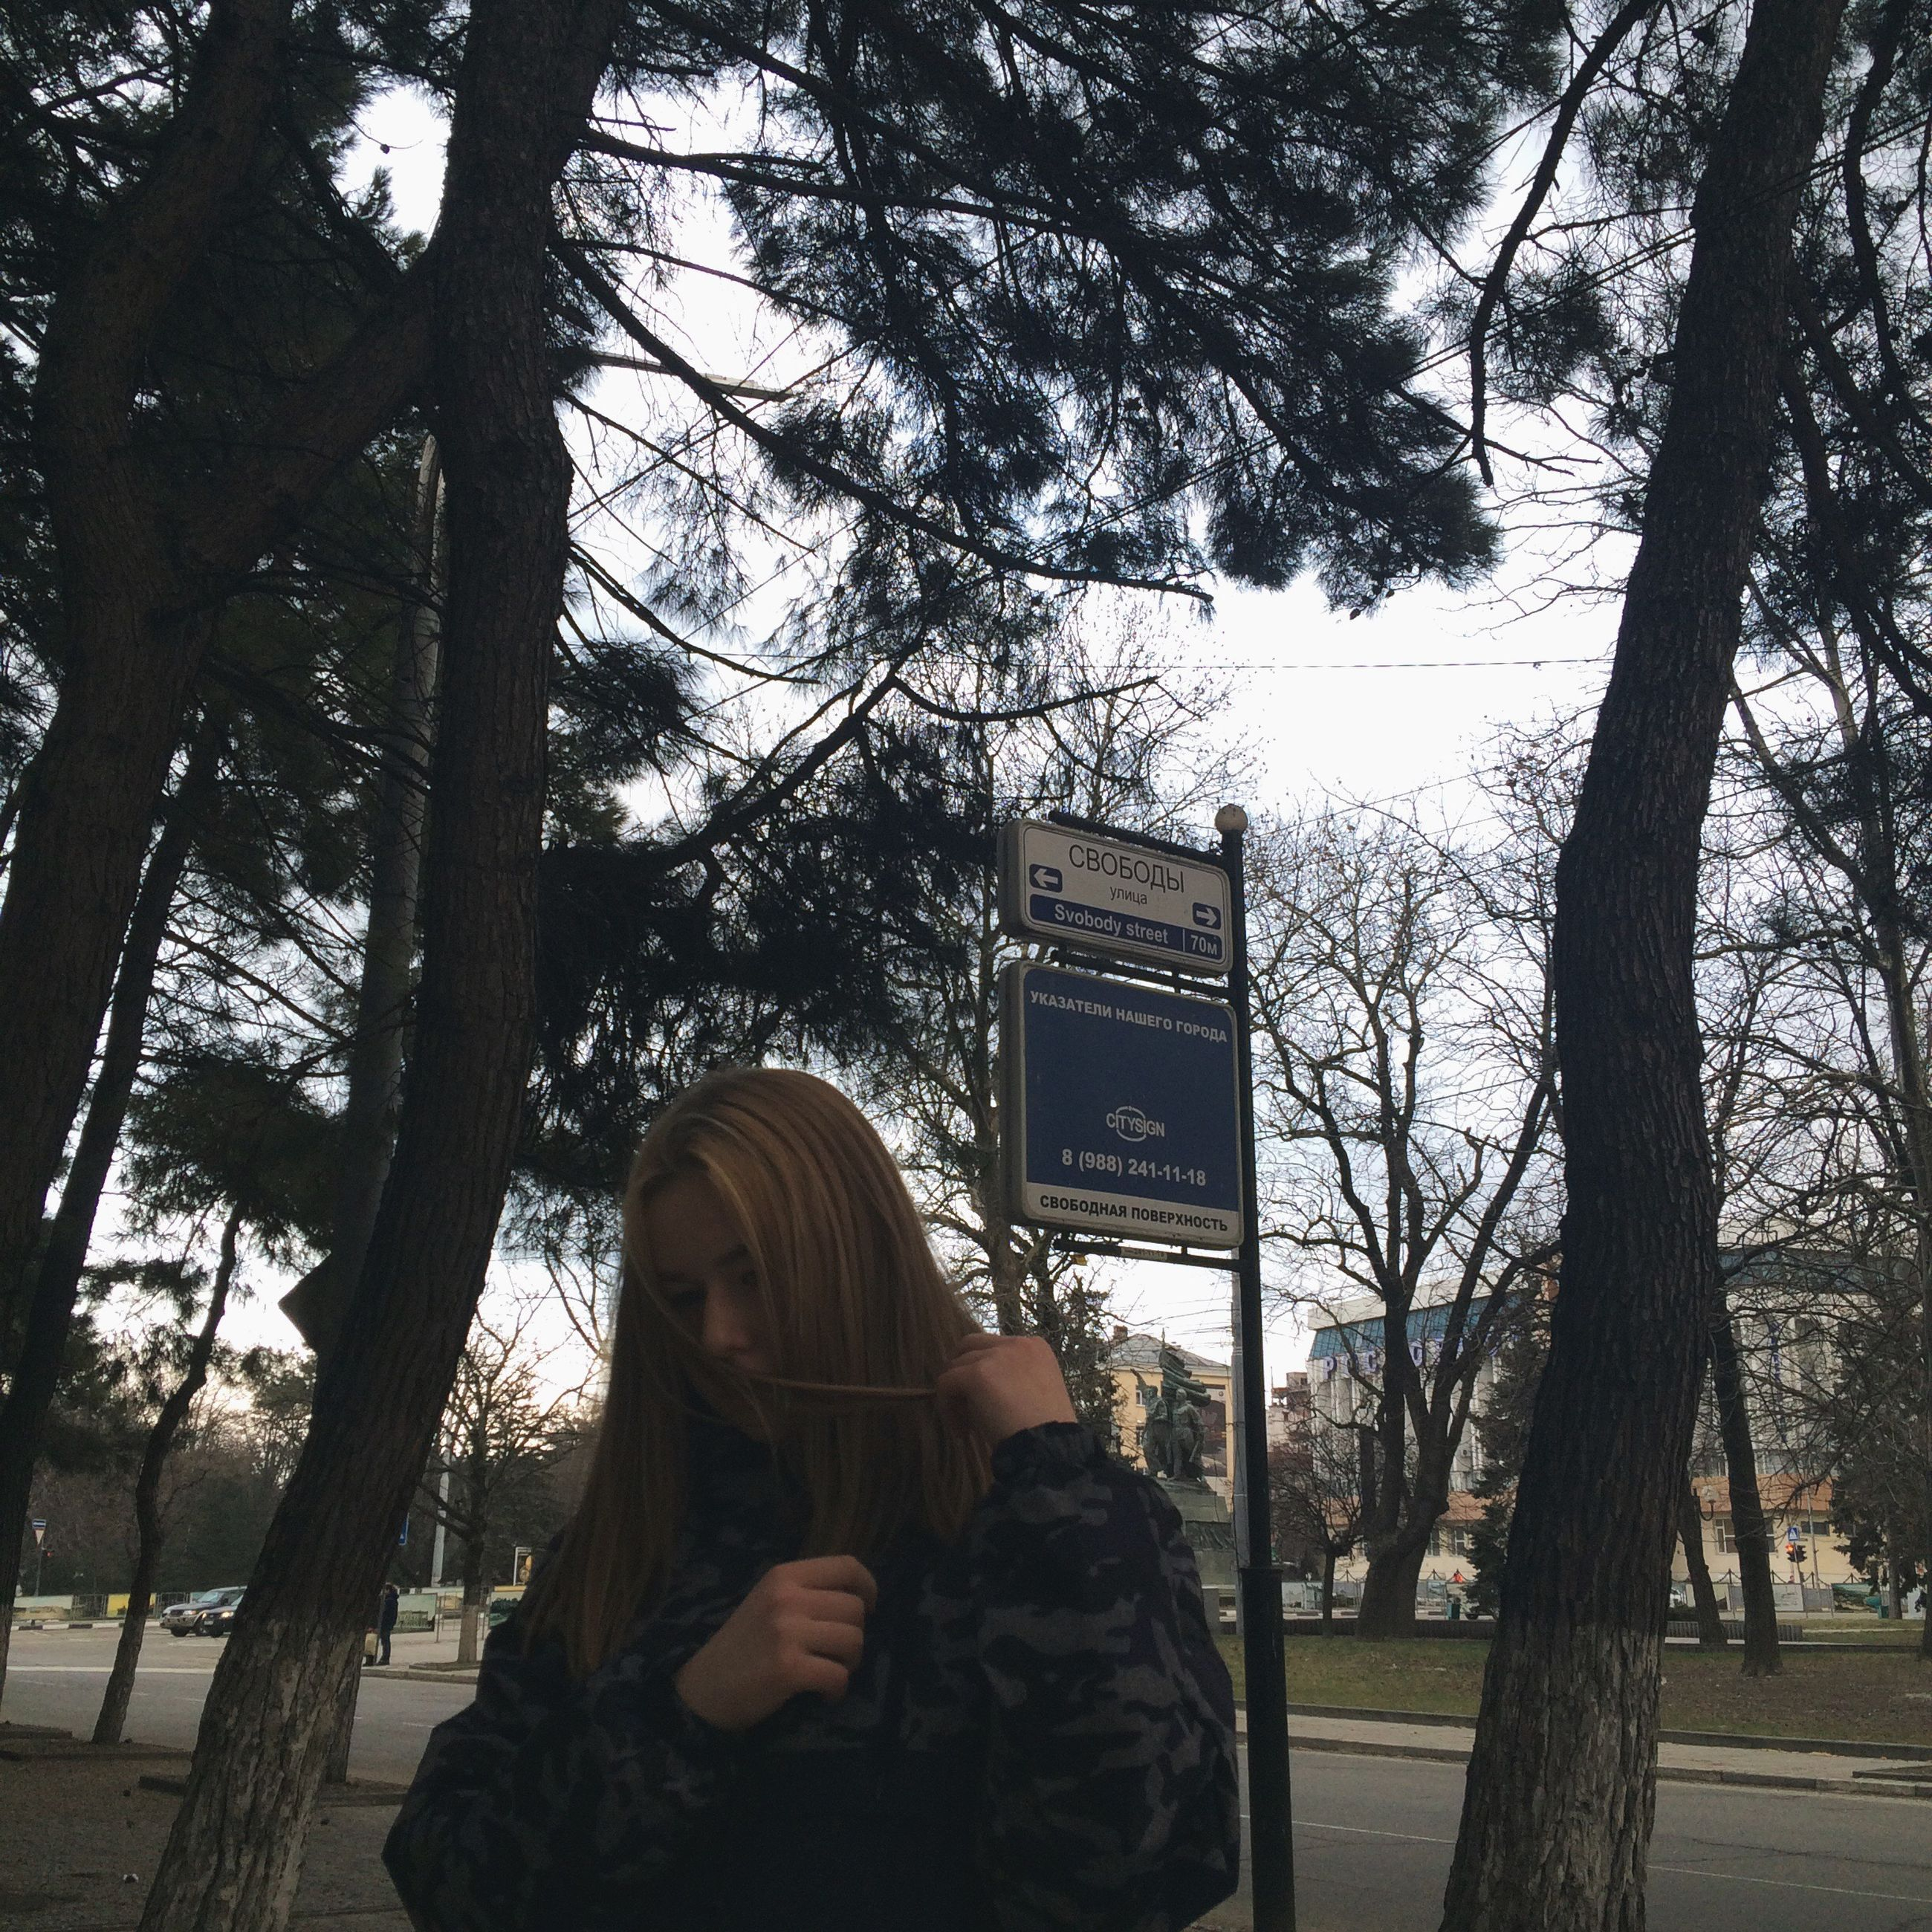 tree, women, one person, real people, people, young women, technology, only women, young adult, adult, day, adults only, one woman only, outdoors, sky, architecture, one young woman only